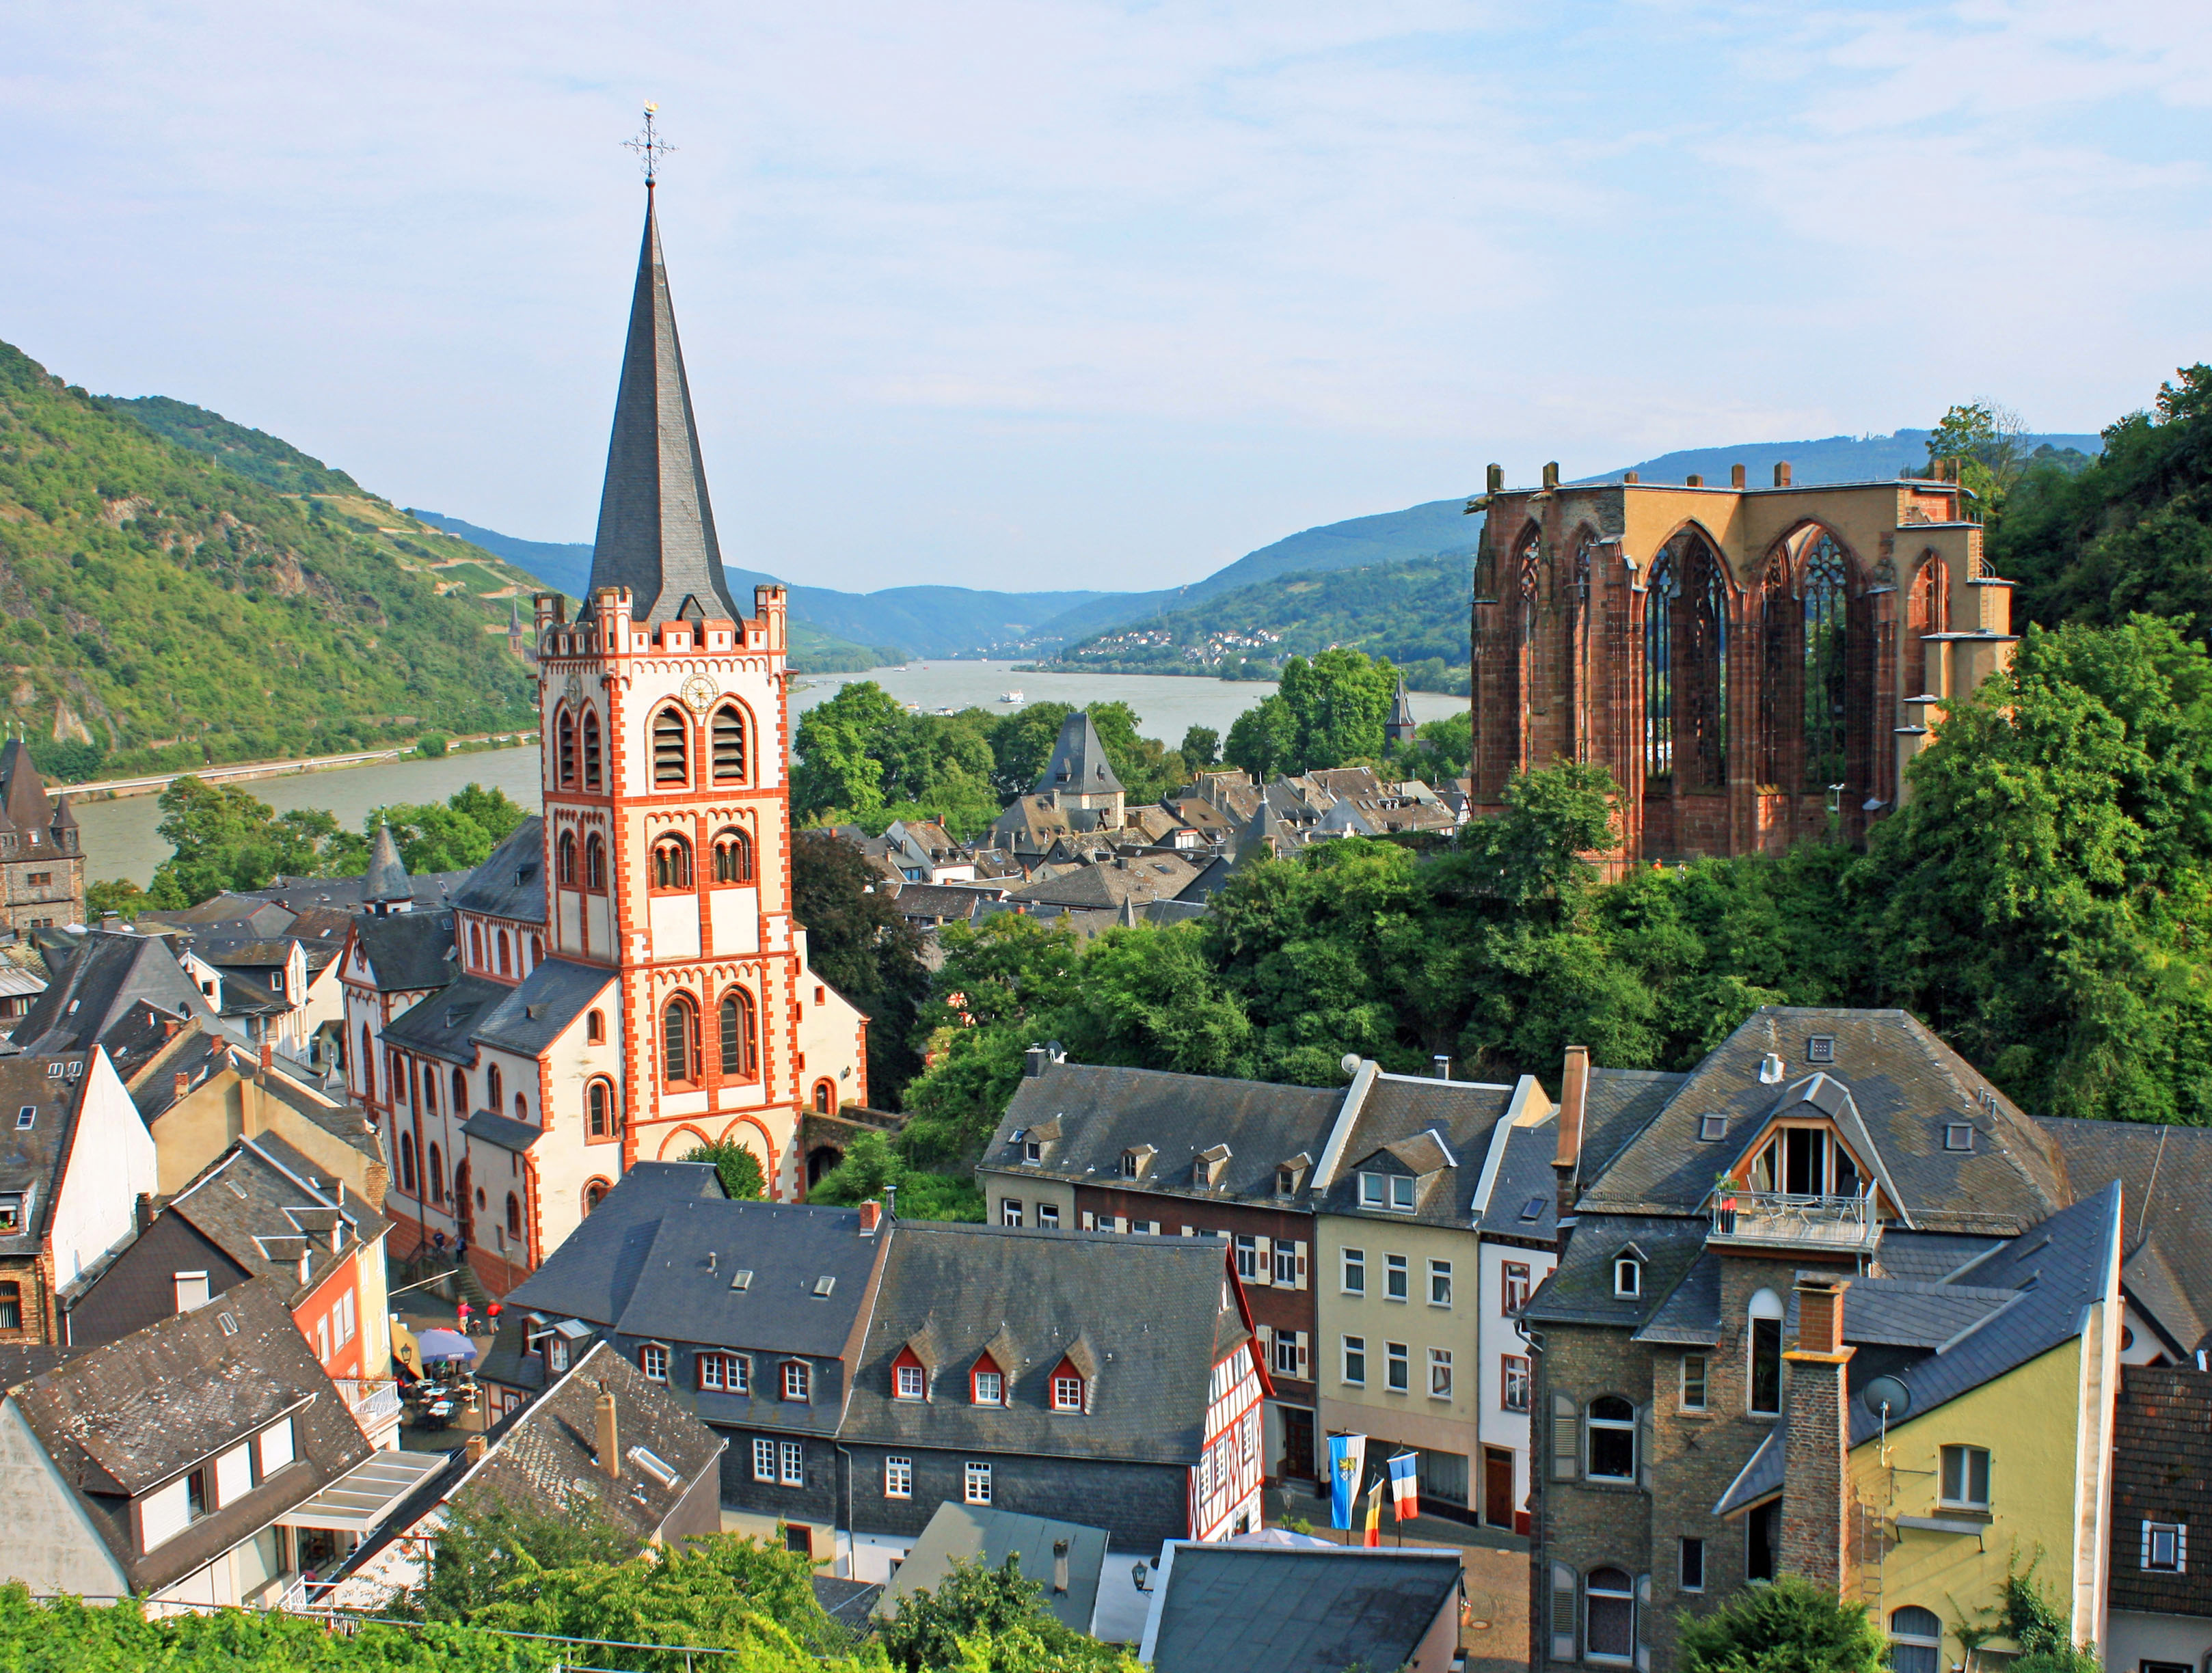 Bacharach, one of the best-preserved medieval towns in Germany.